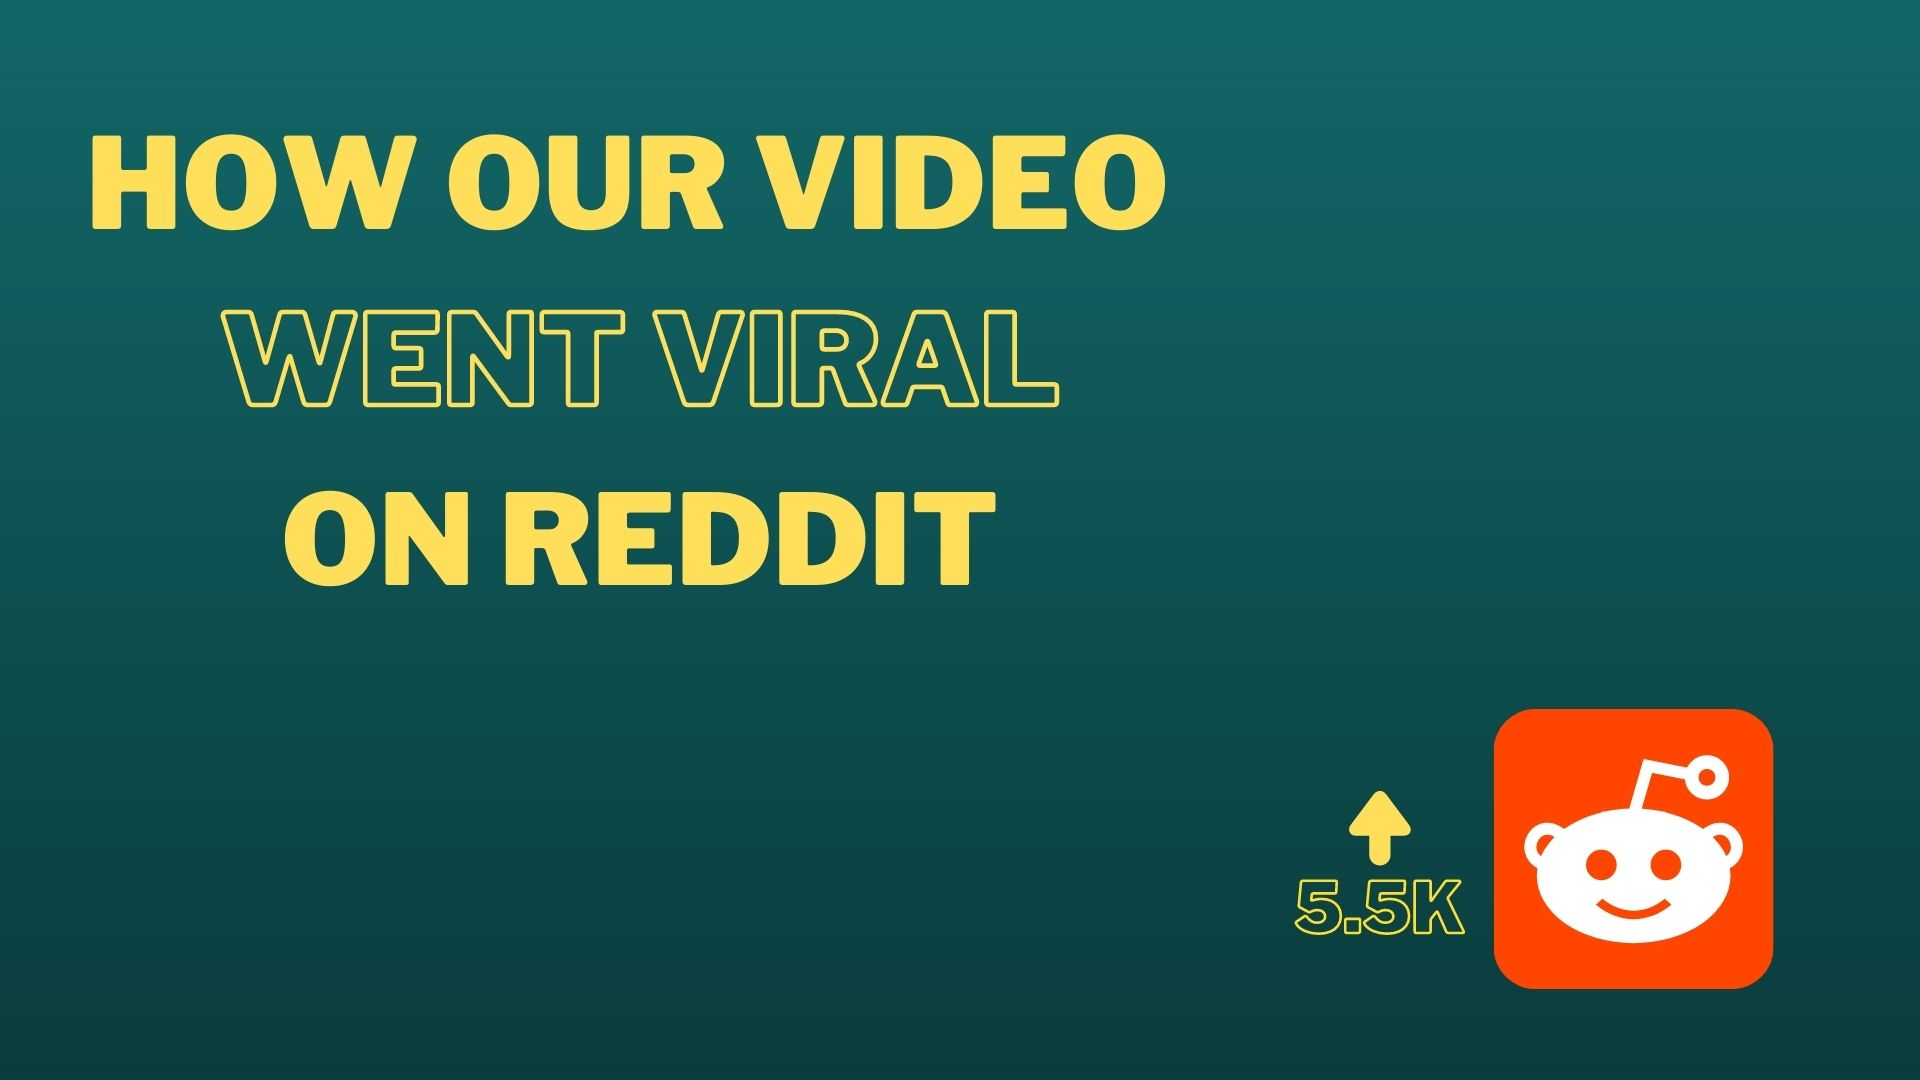 How our video went viral on reddit cover image